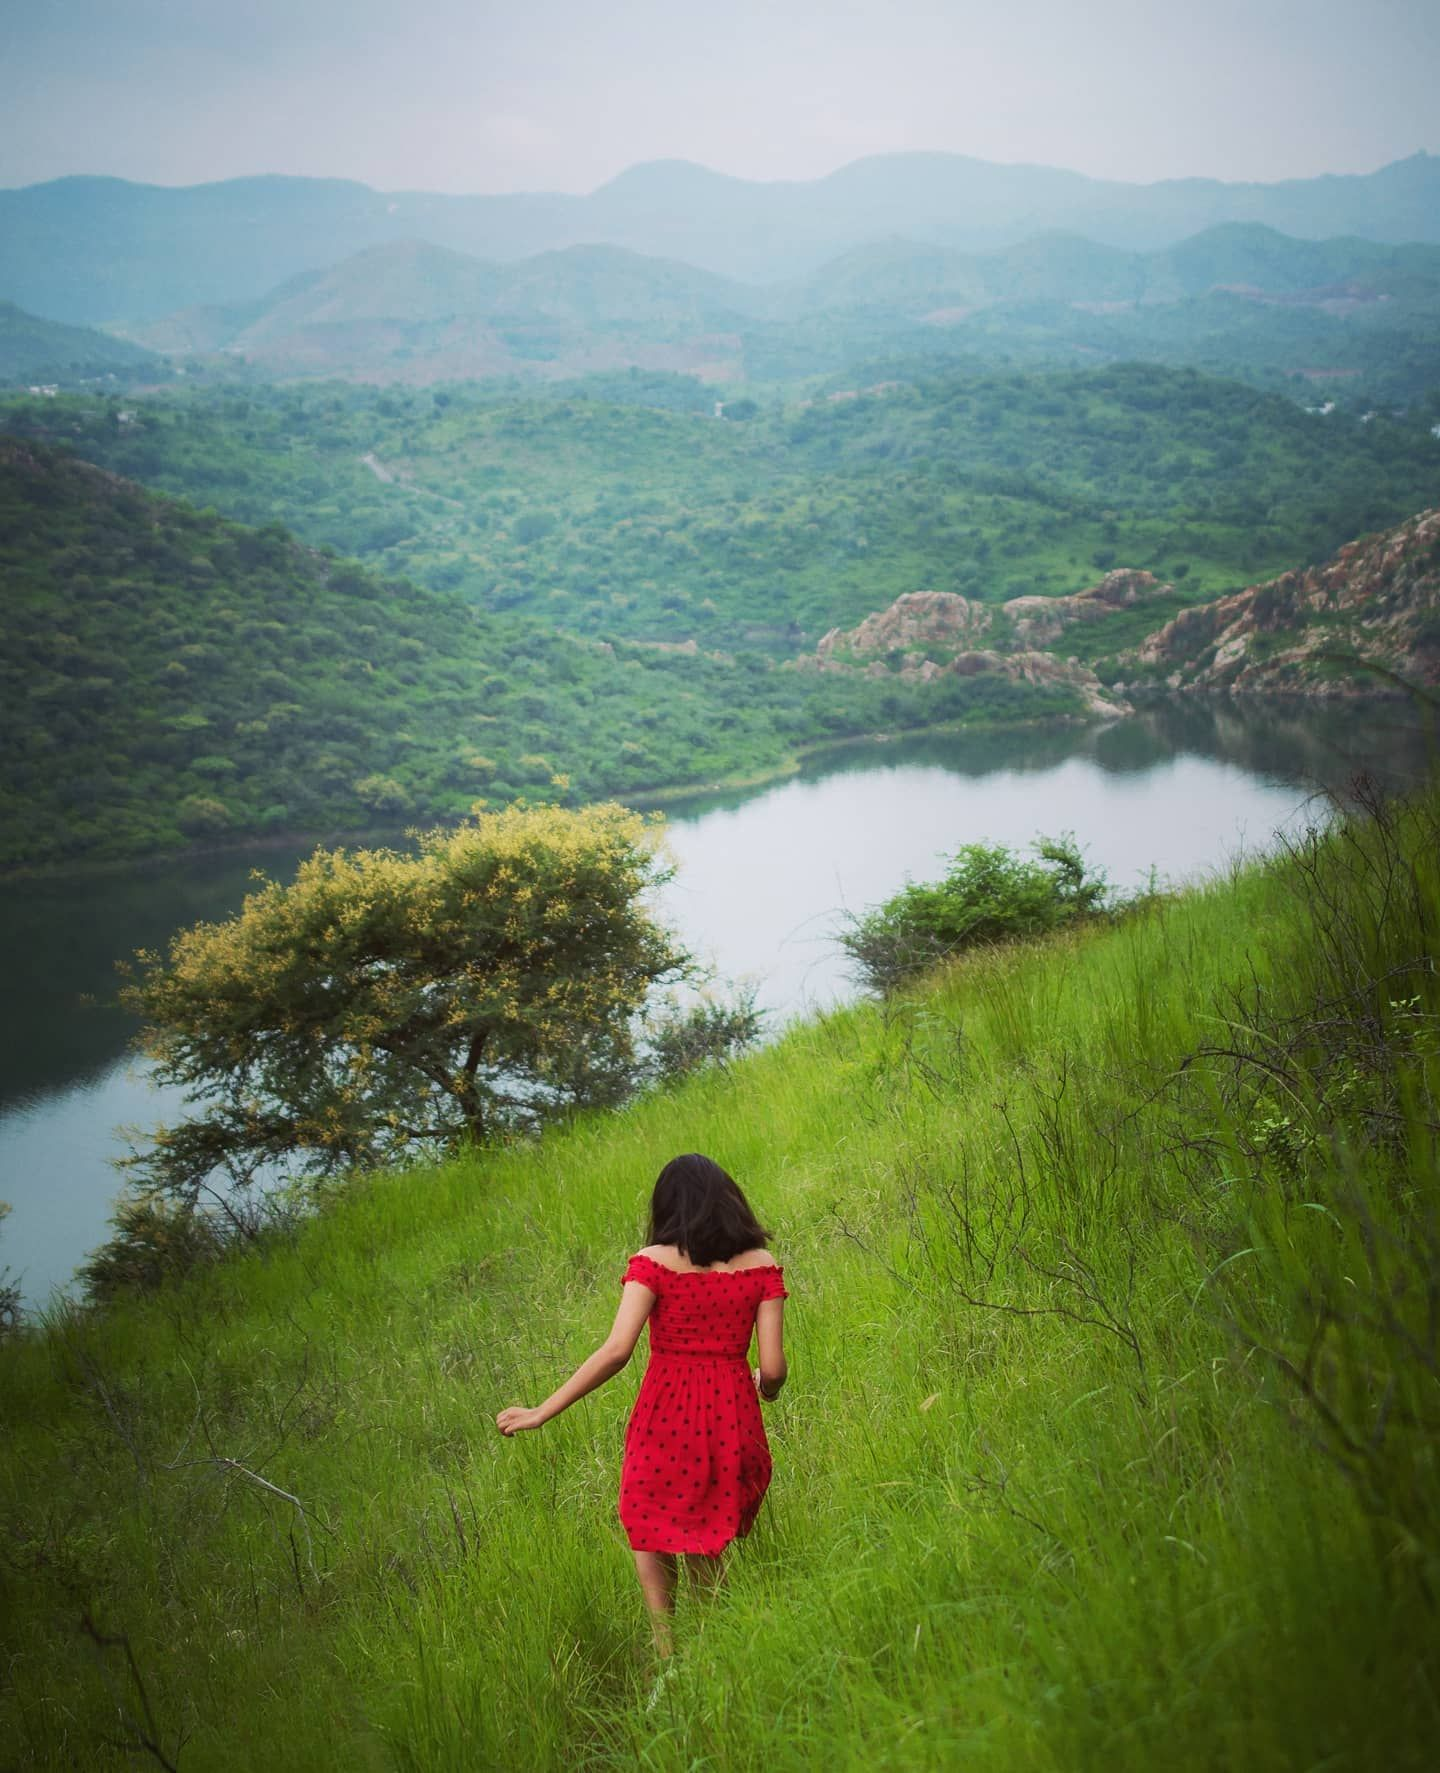 Take me there.. . . Disclaimer - Please don't try this. . . From recent hike. @radiant_soul99 @niveditaameta @hrshtpurohit . #photographers_of_india#_soi#dslrofficial#_hpics#ig_respect#indianphotographyclub#Desi_diaries#i_hobbygraphy#_woi #oph#indiapictures #travelrealindia#india_undiscovered#yourshot_india#_instaindia_ #_indiadiaries#Udaipur#Udaipurblog@udaipurblog@instaudaipur#instaudaipur #CAsaurabhPatwari #rangeelorajasthan #imperialrajasthan #colours_of_rajasthan #lonelyplanetindia #igersra